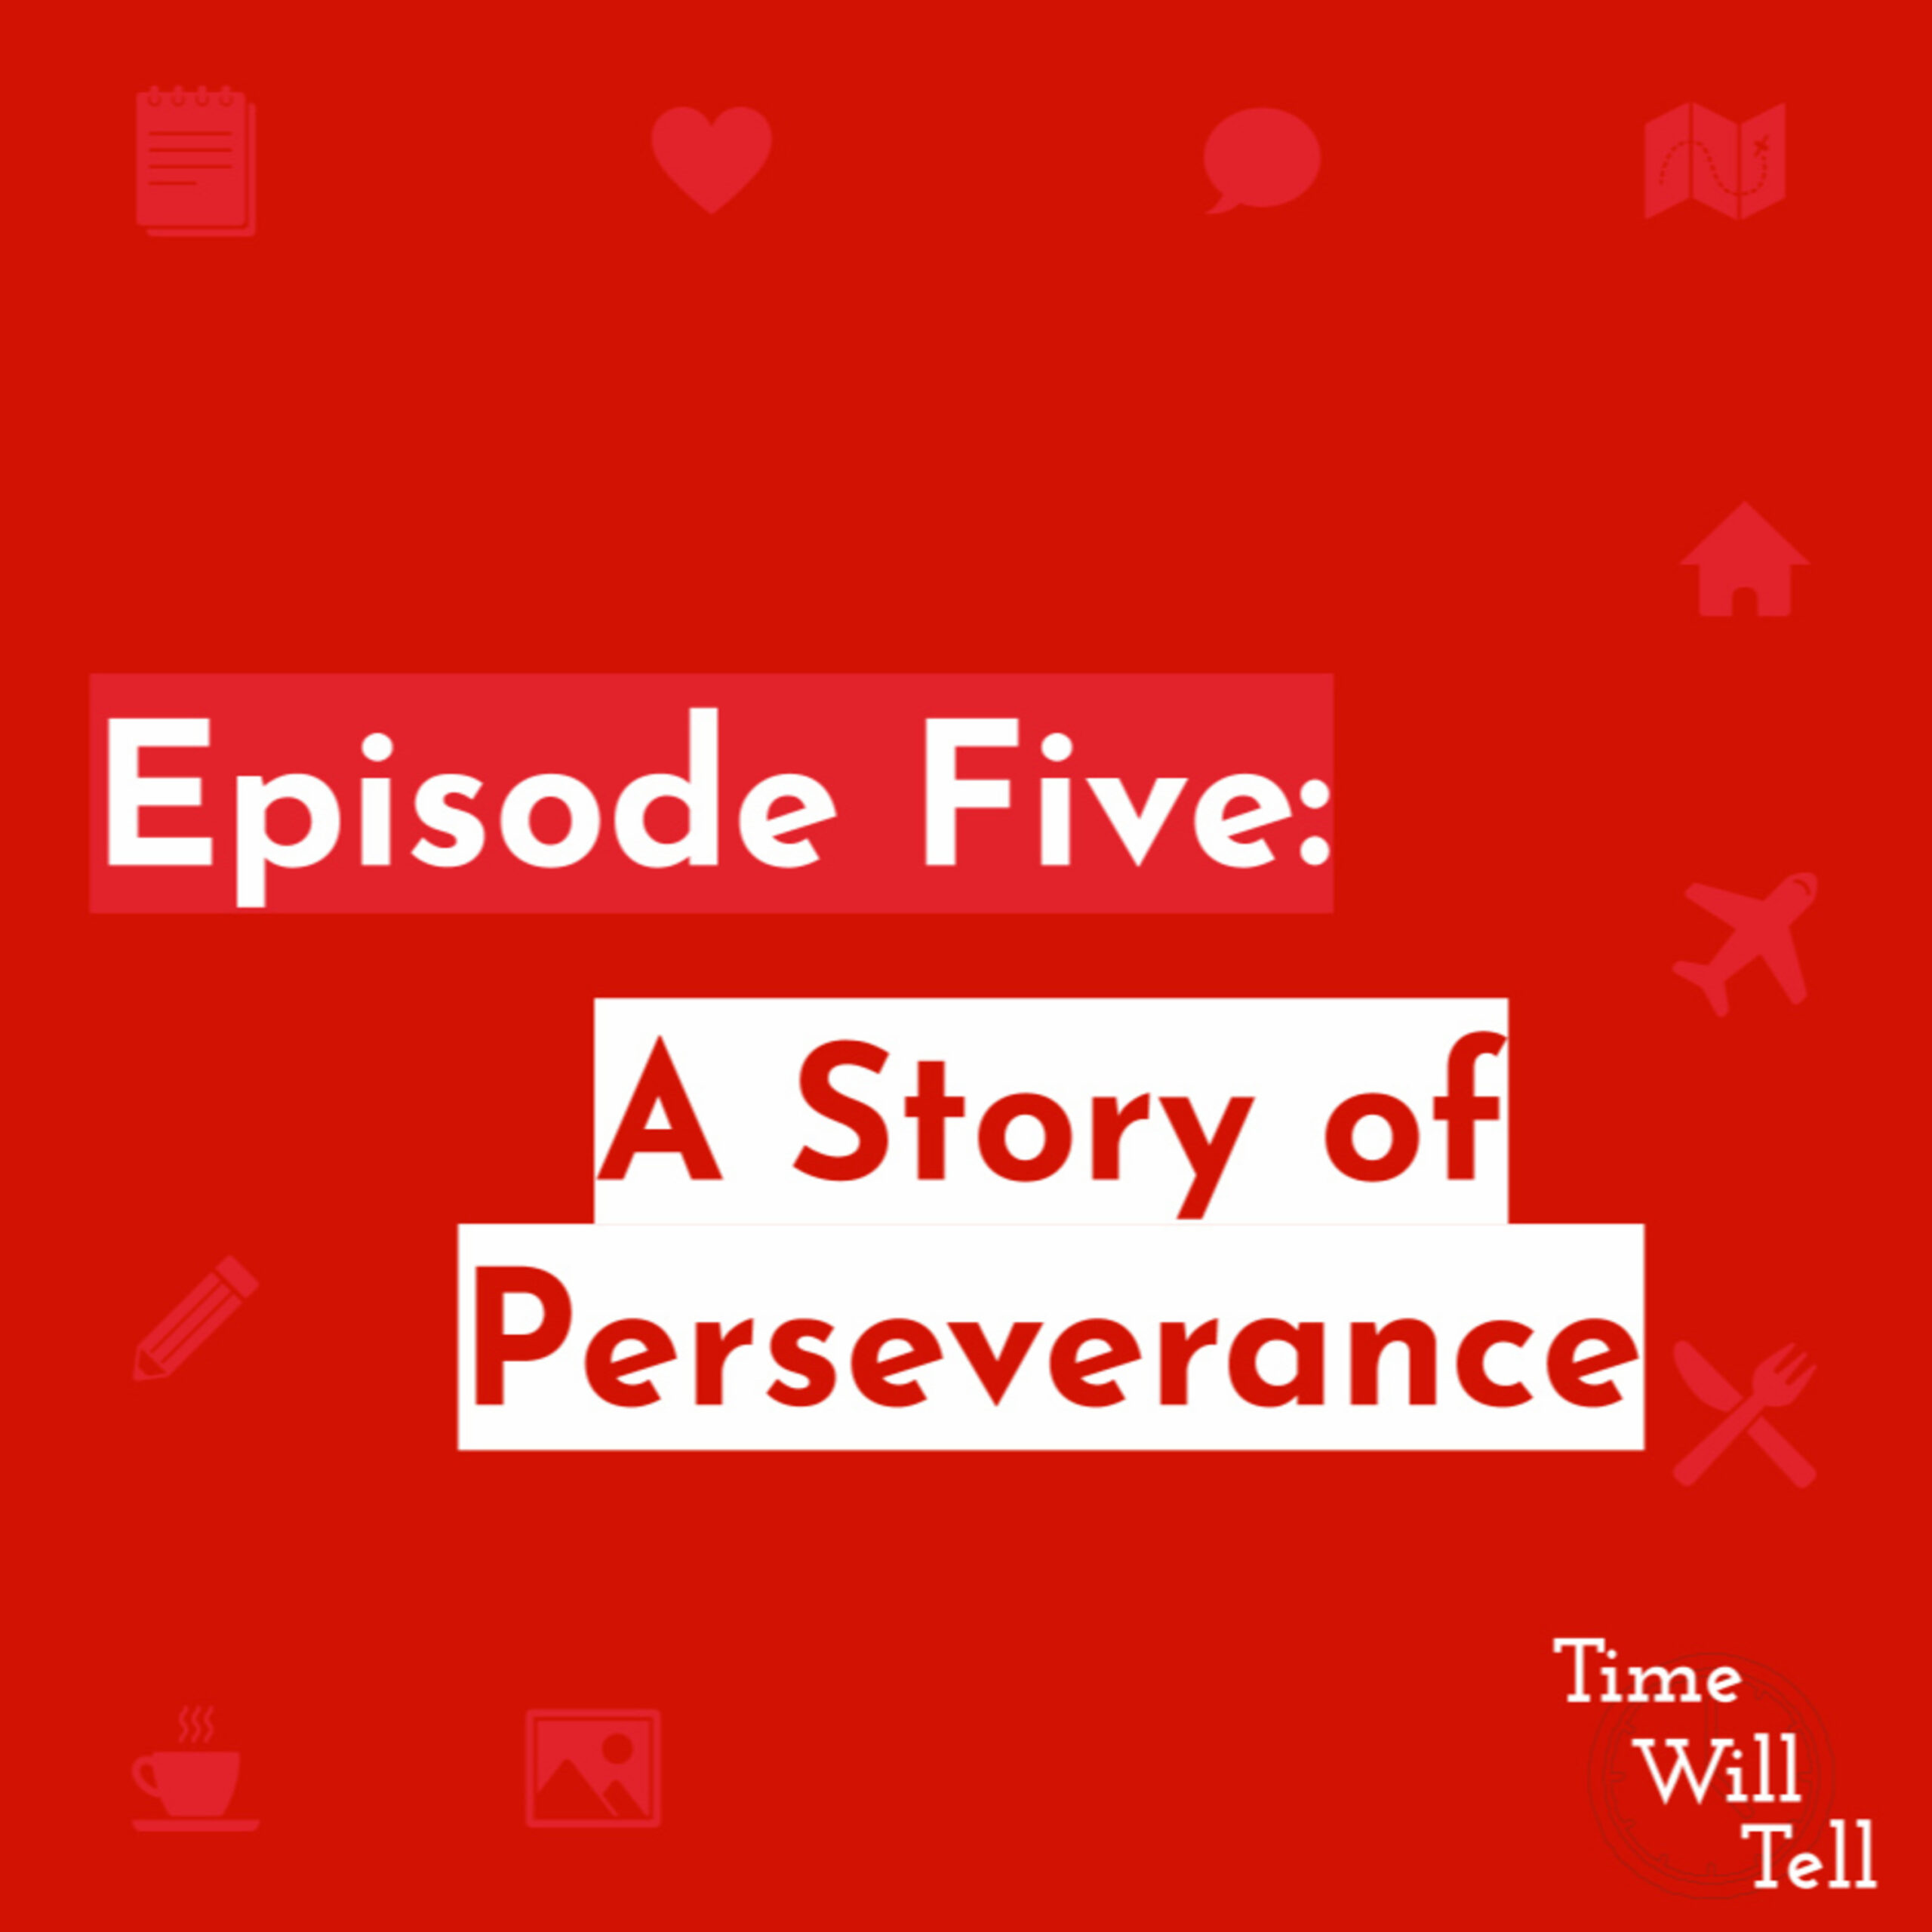 Episode Five: A Story of Perseverance